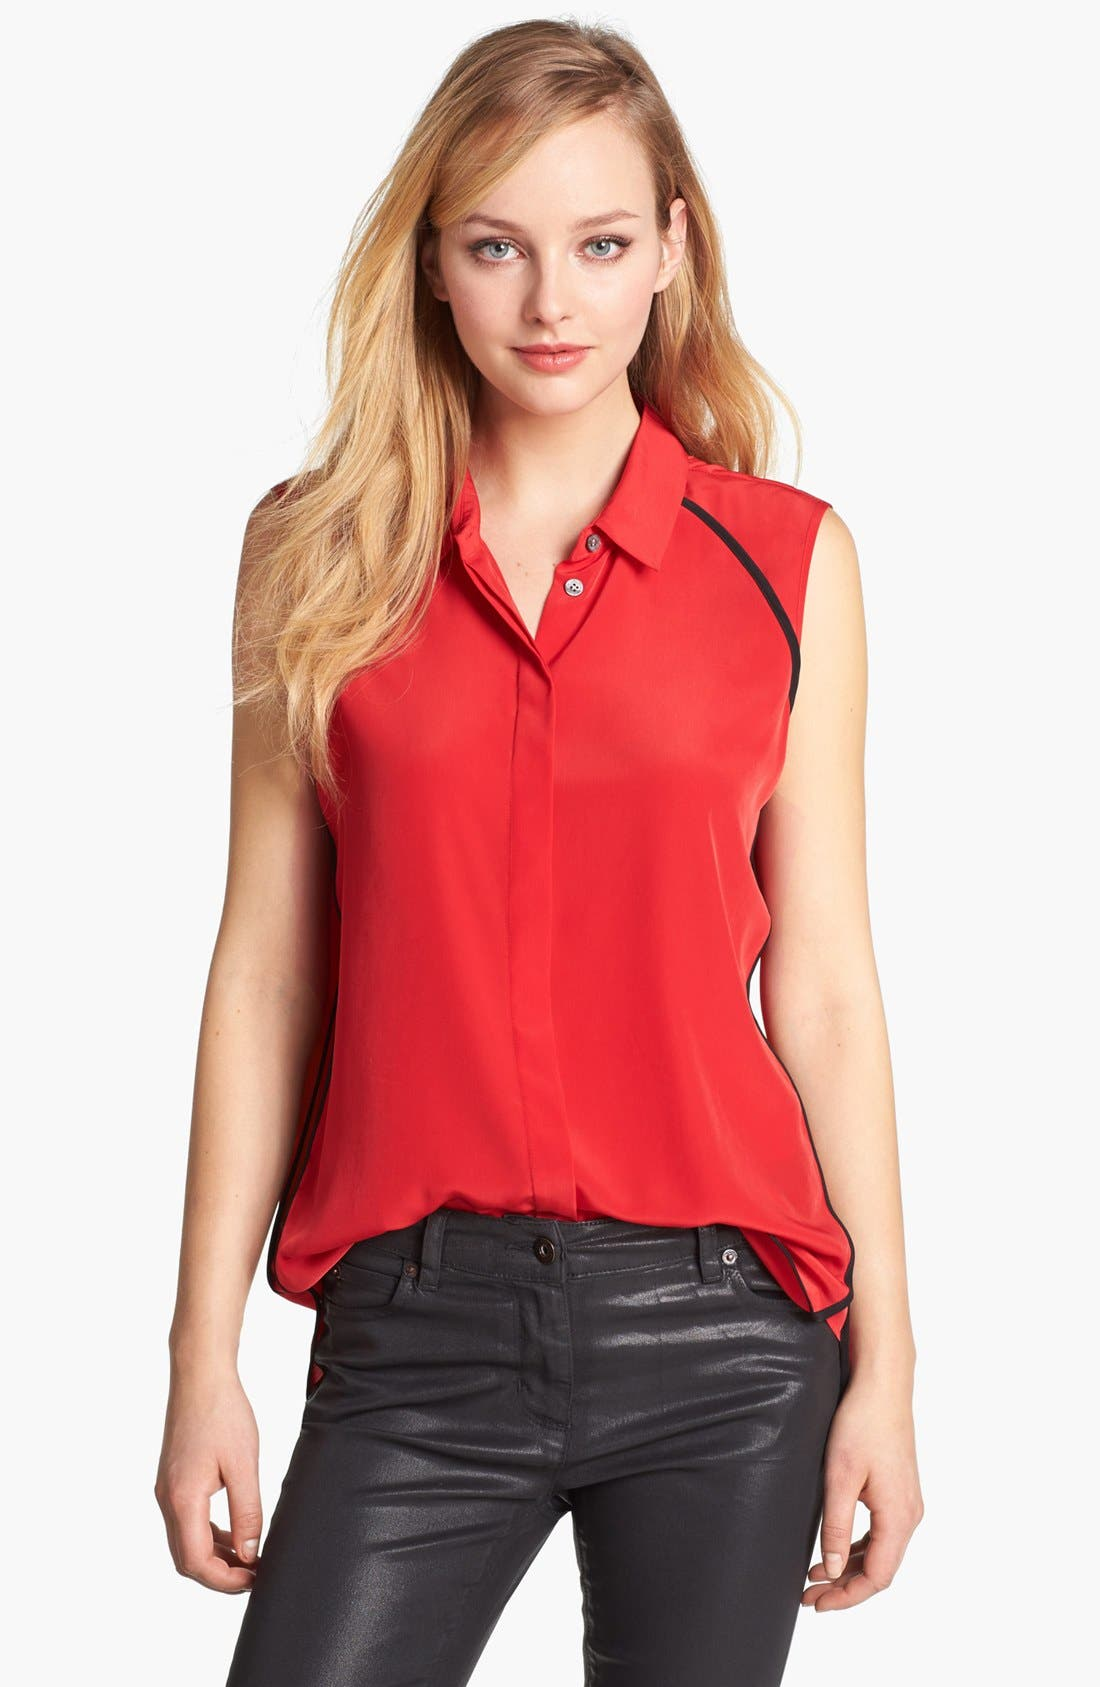 Alternate Image 1 Selected - Vince Camuto Contrast Trim Sleeveless Blouse